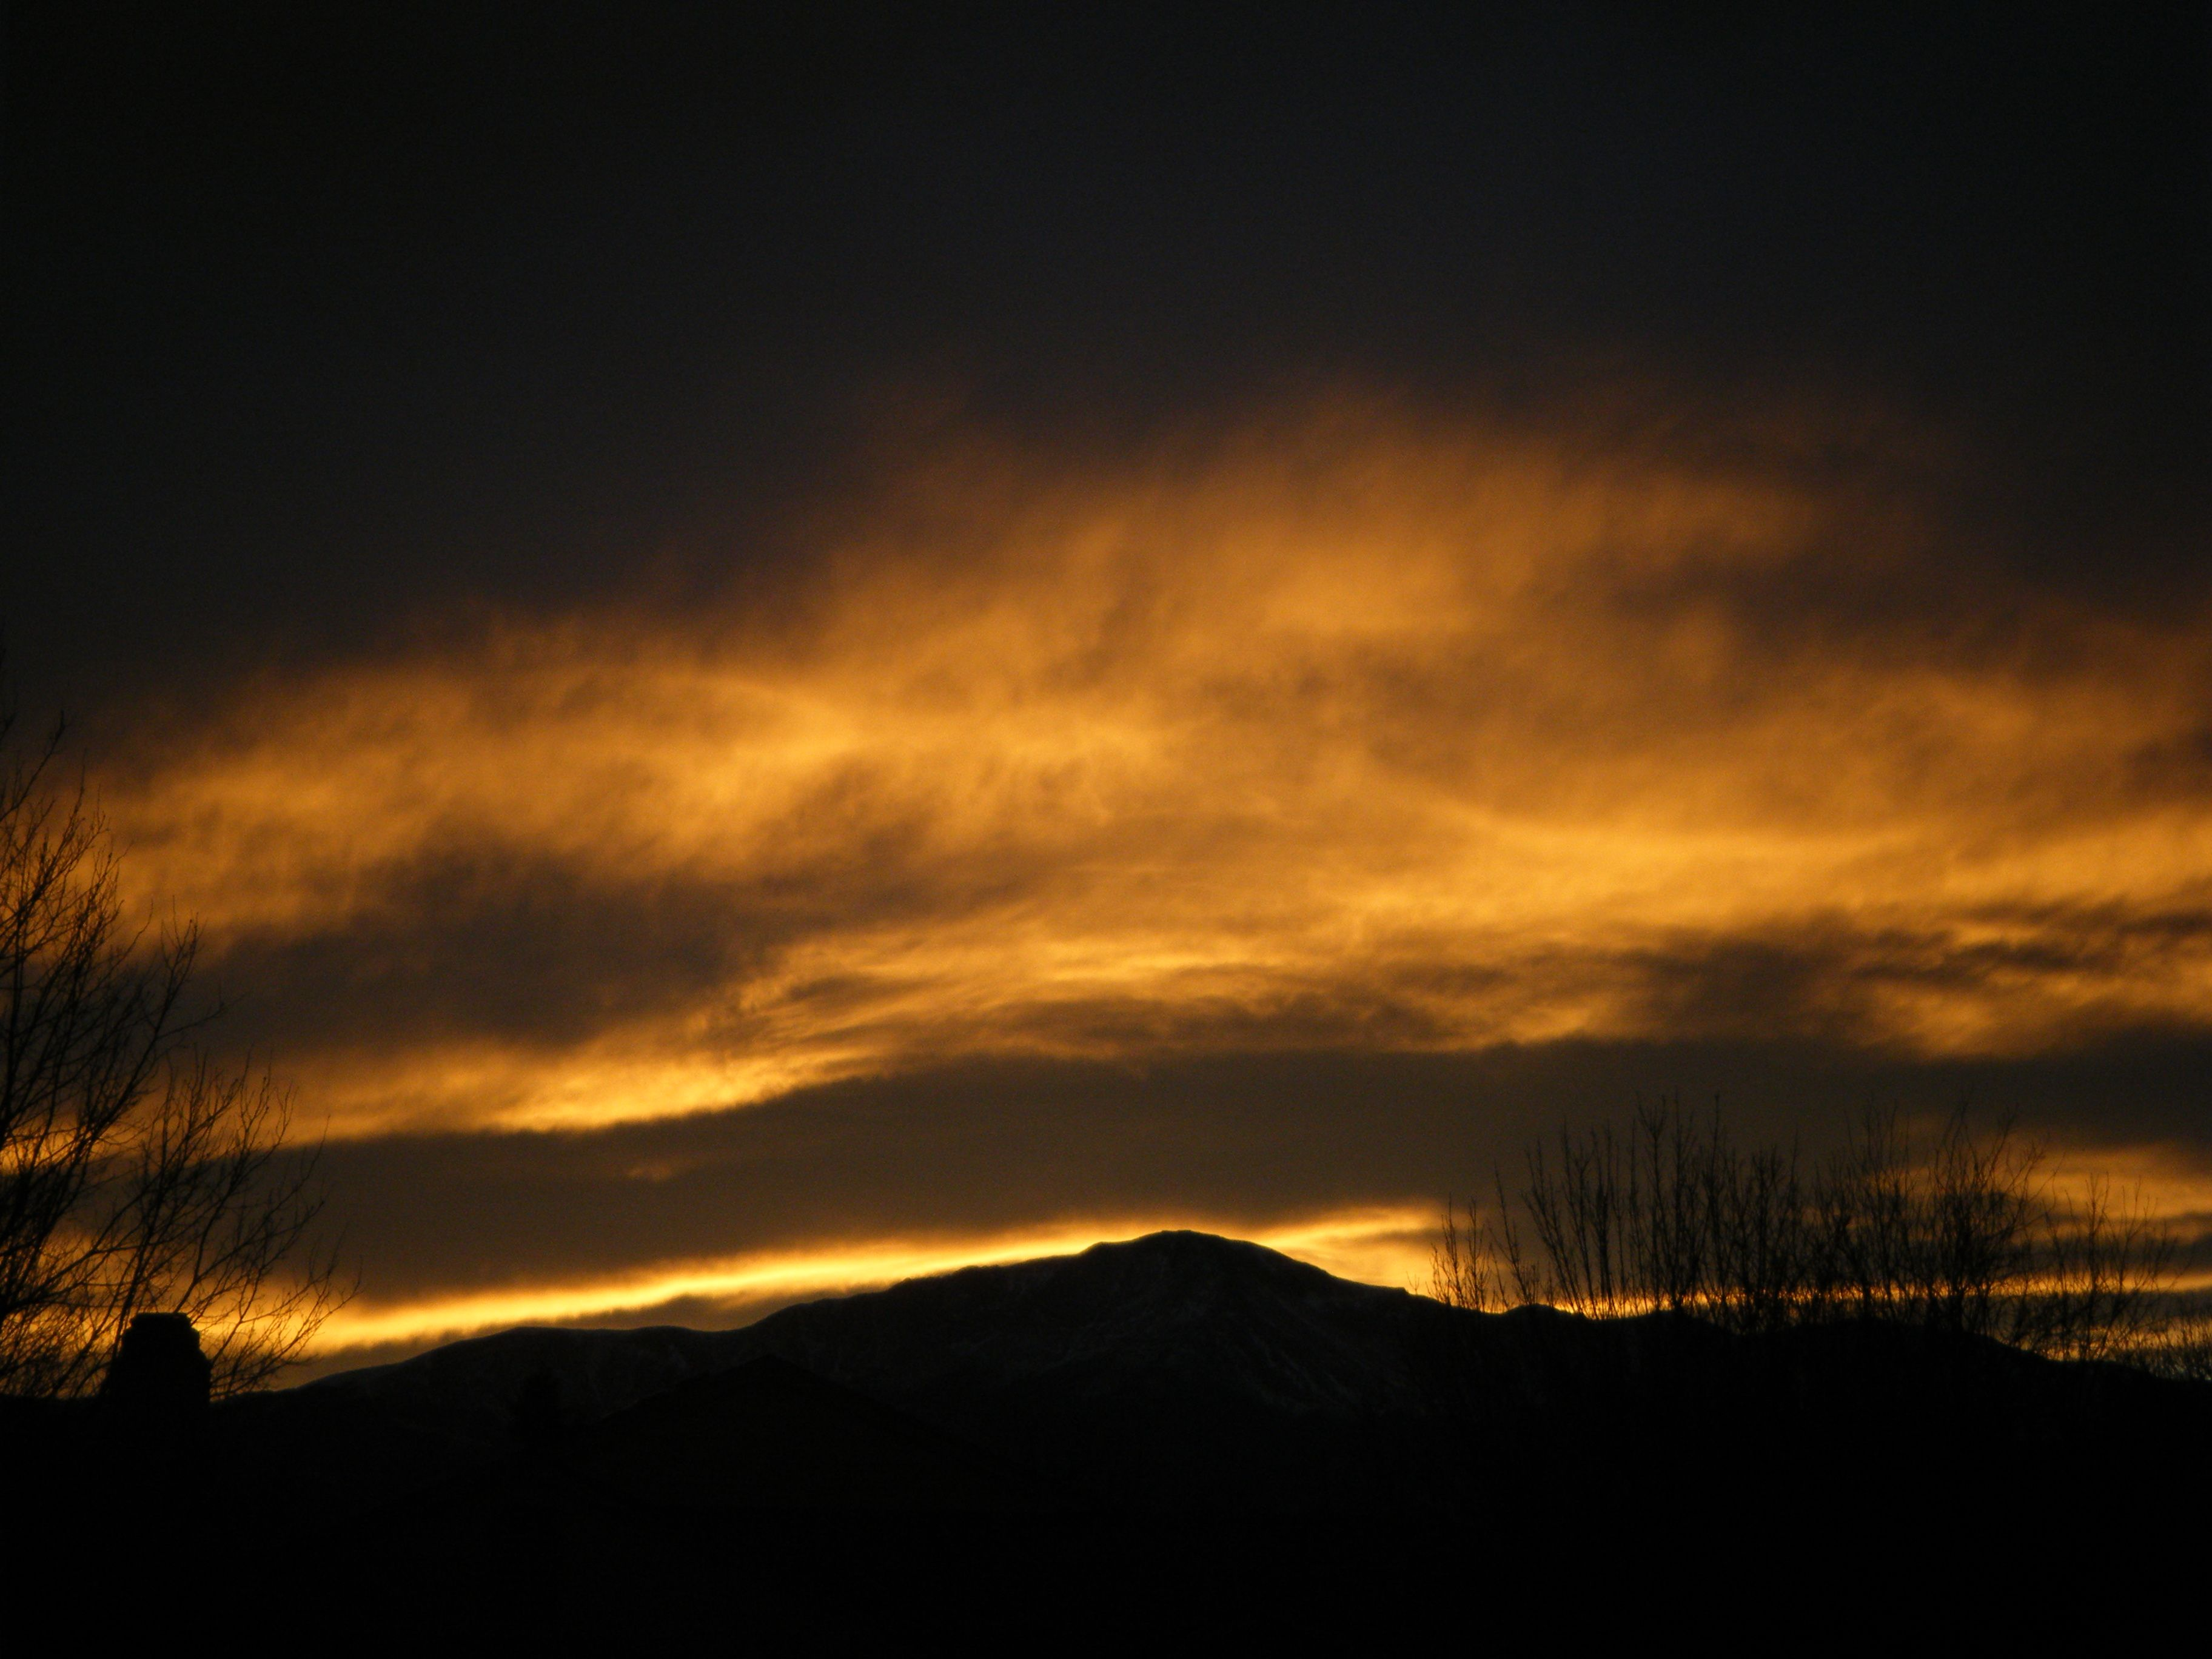 Another sunset from my home in Co springs